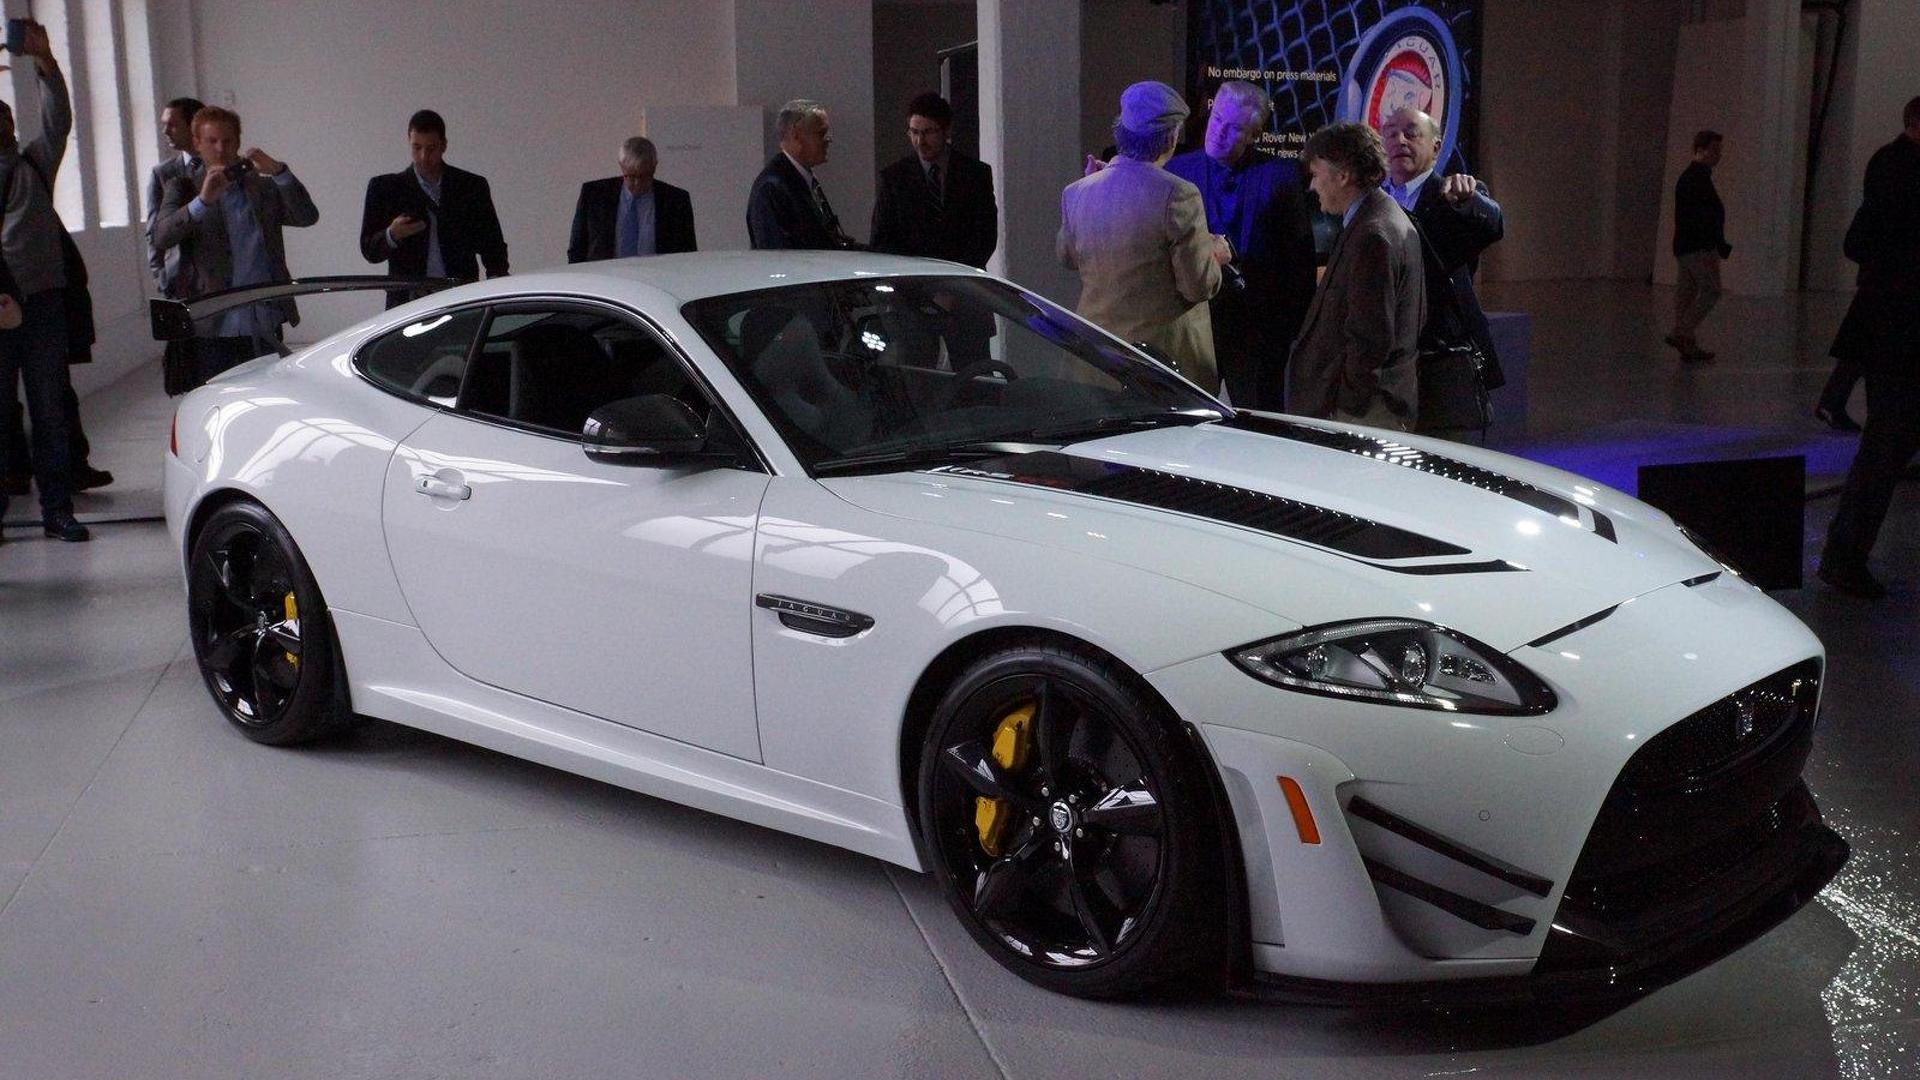 Jaguar XKR-S GT production could be expanded to 50 units